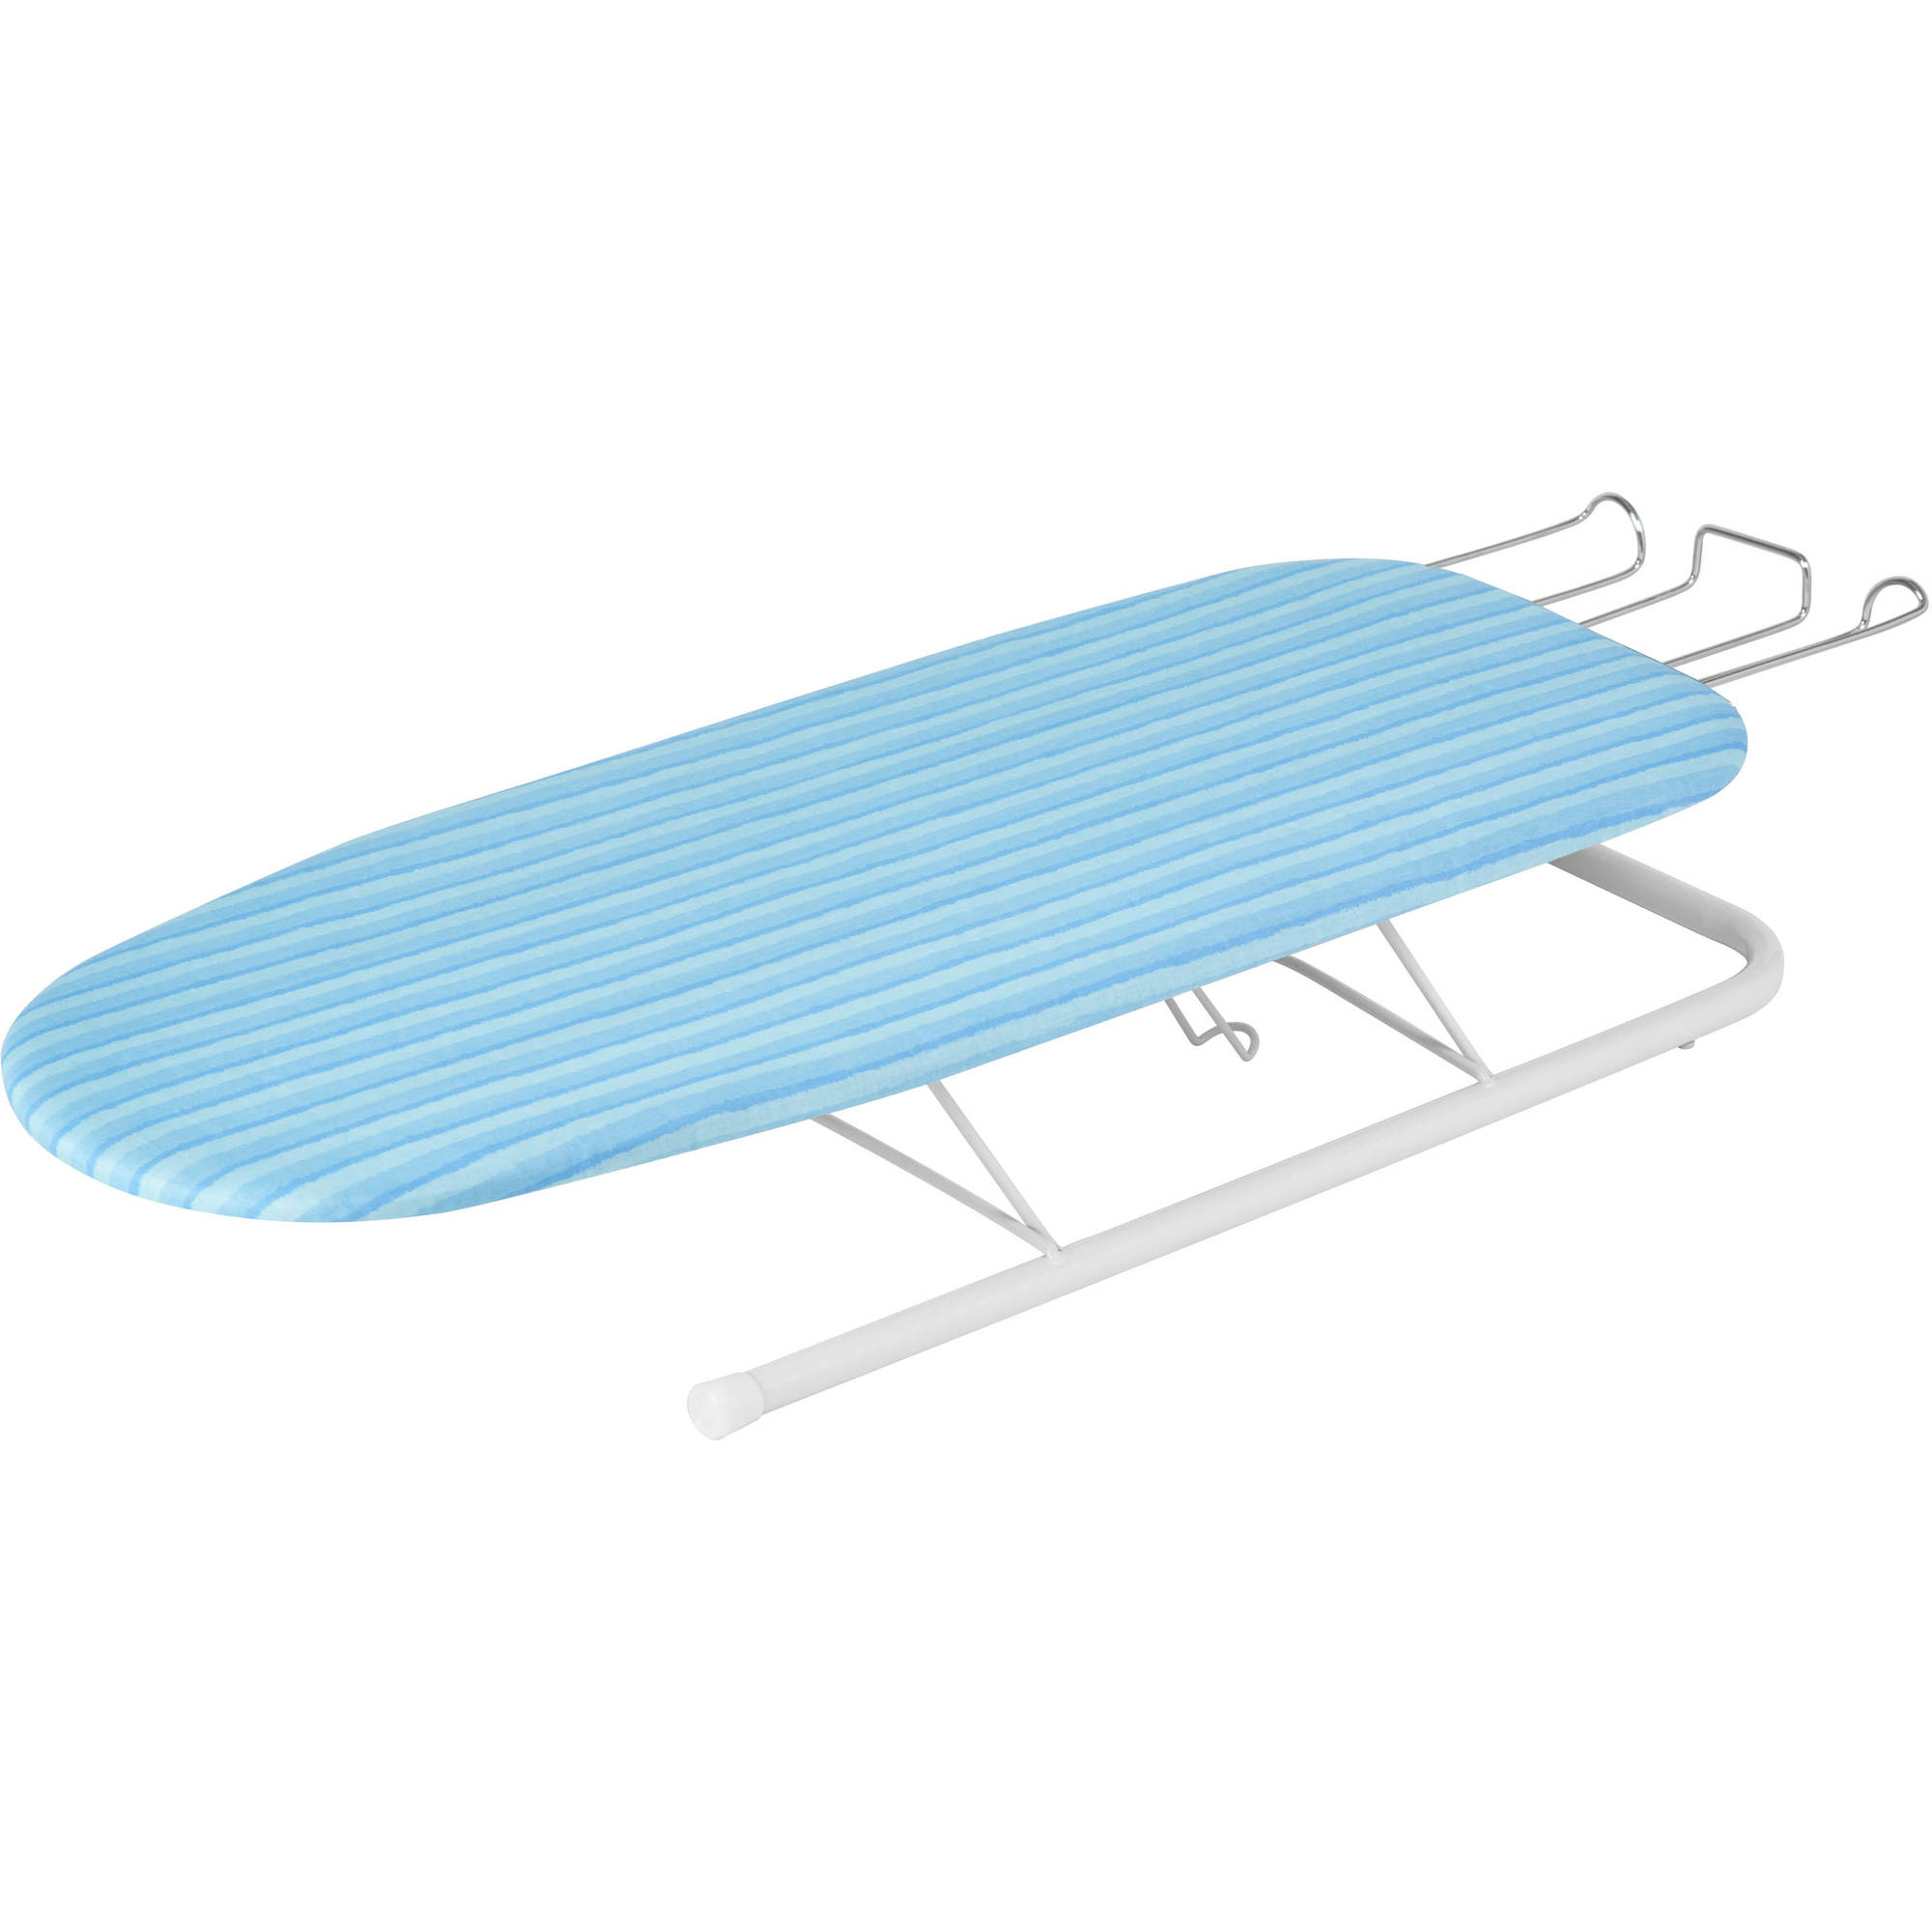 Honey-Can-Do Tabletop Ironing Board with Retractable Iron Rest, BRD-01435, Blue